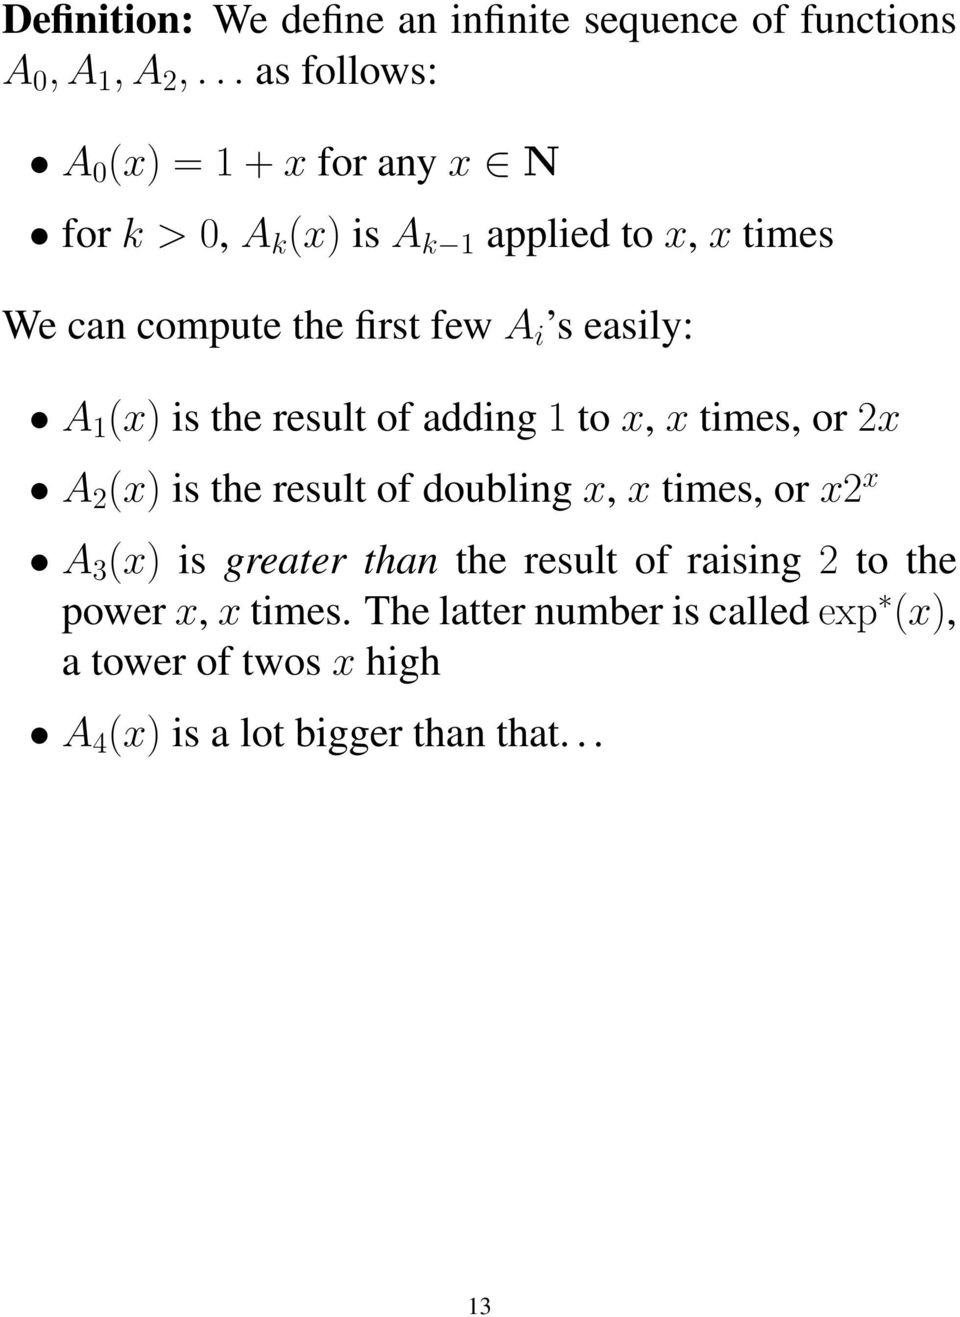 A i s easily: A 1 (x) is the result of adding 1 to x, x times, or 2x A 2 (x) is the result of doubling x, x times, or x2